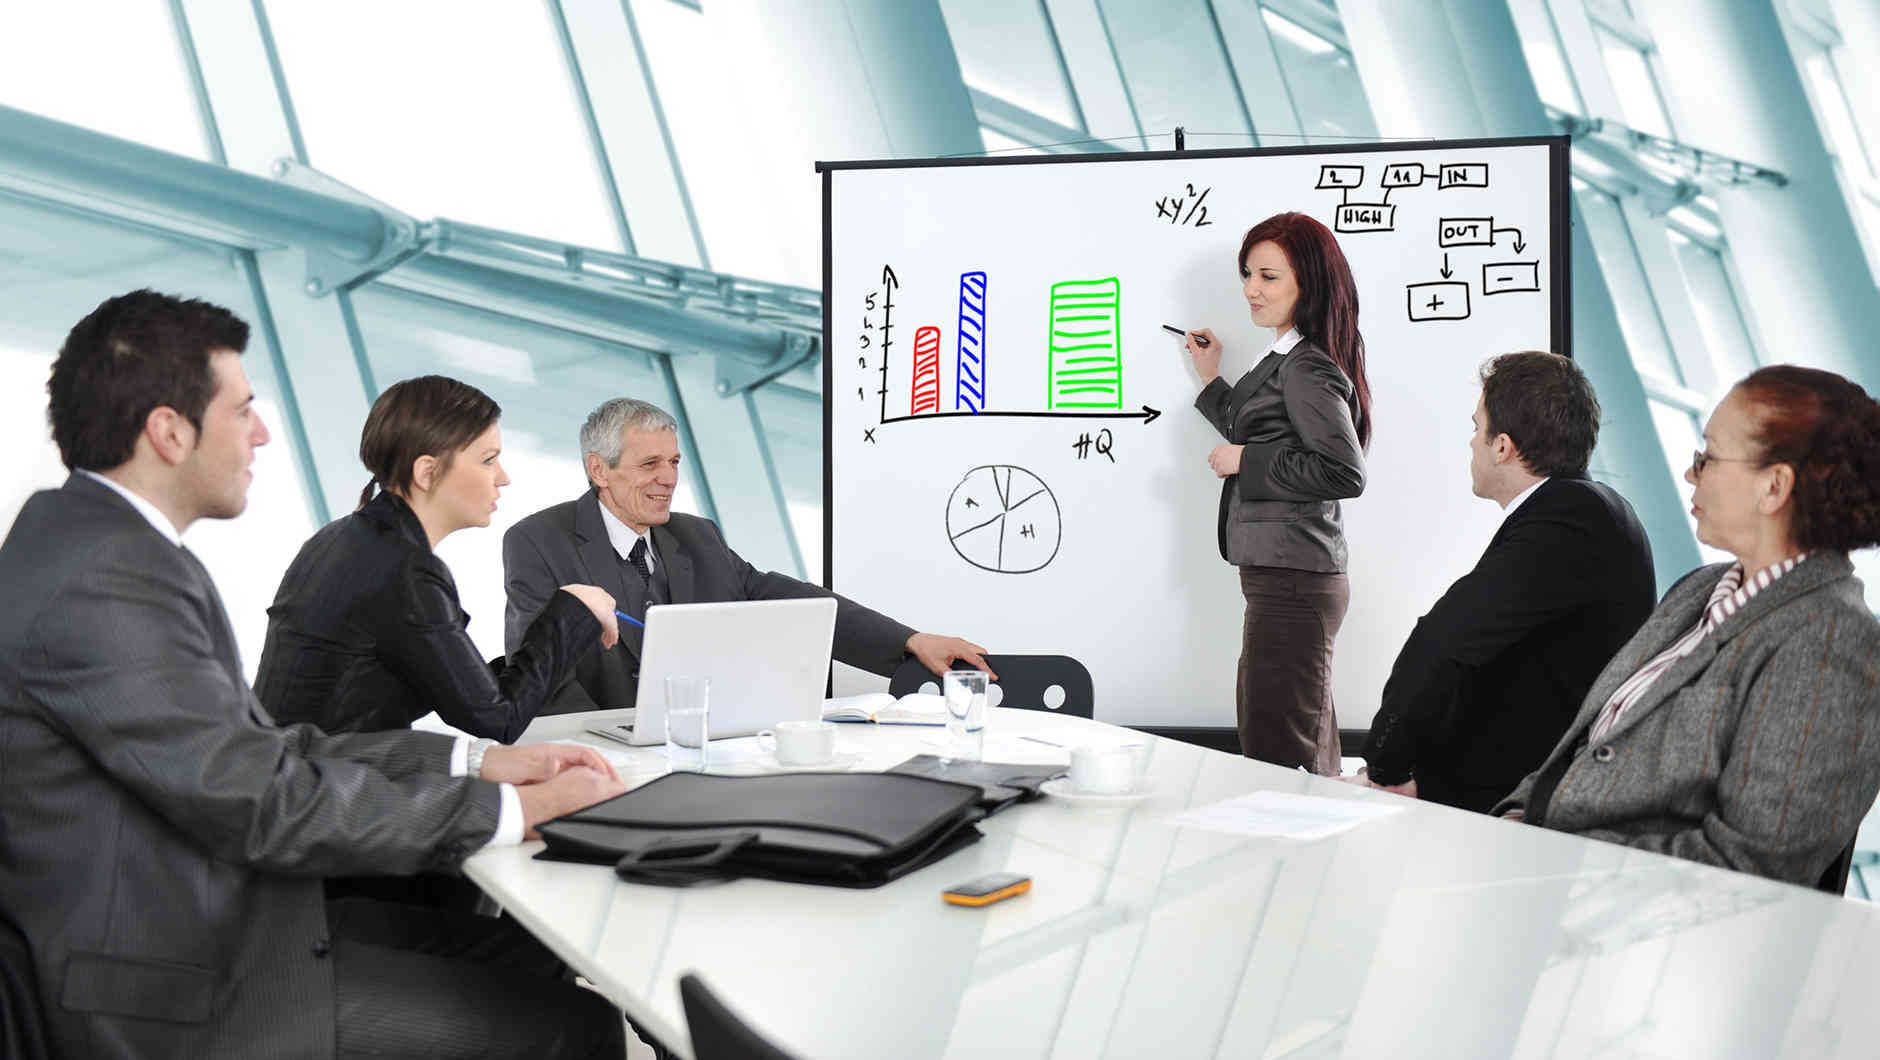 business presentation Business project plan presentation (widescreen) if you want management and stakeholders to back your business project, you'll need a well-crafted project plan this accessible template includes slides for the project description, scope, objectives, deliverables, success factors, implementation details, performance measures, and risk management.